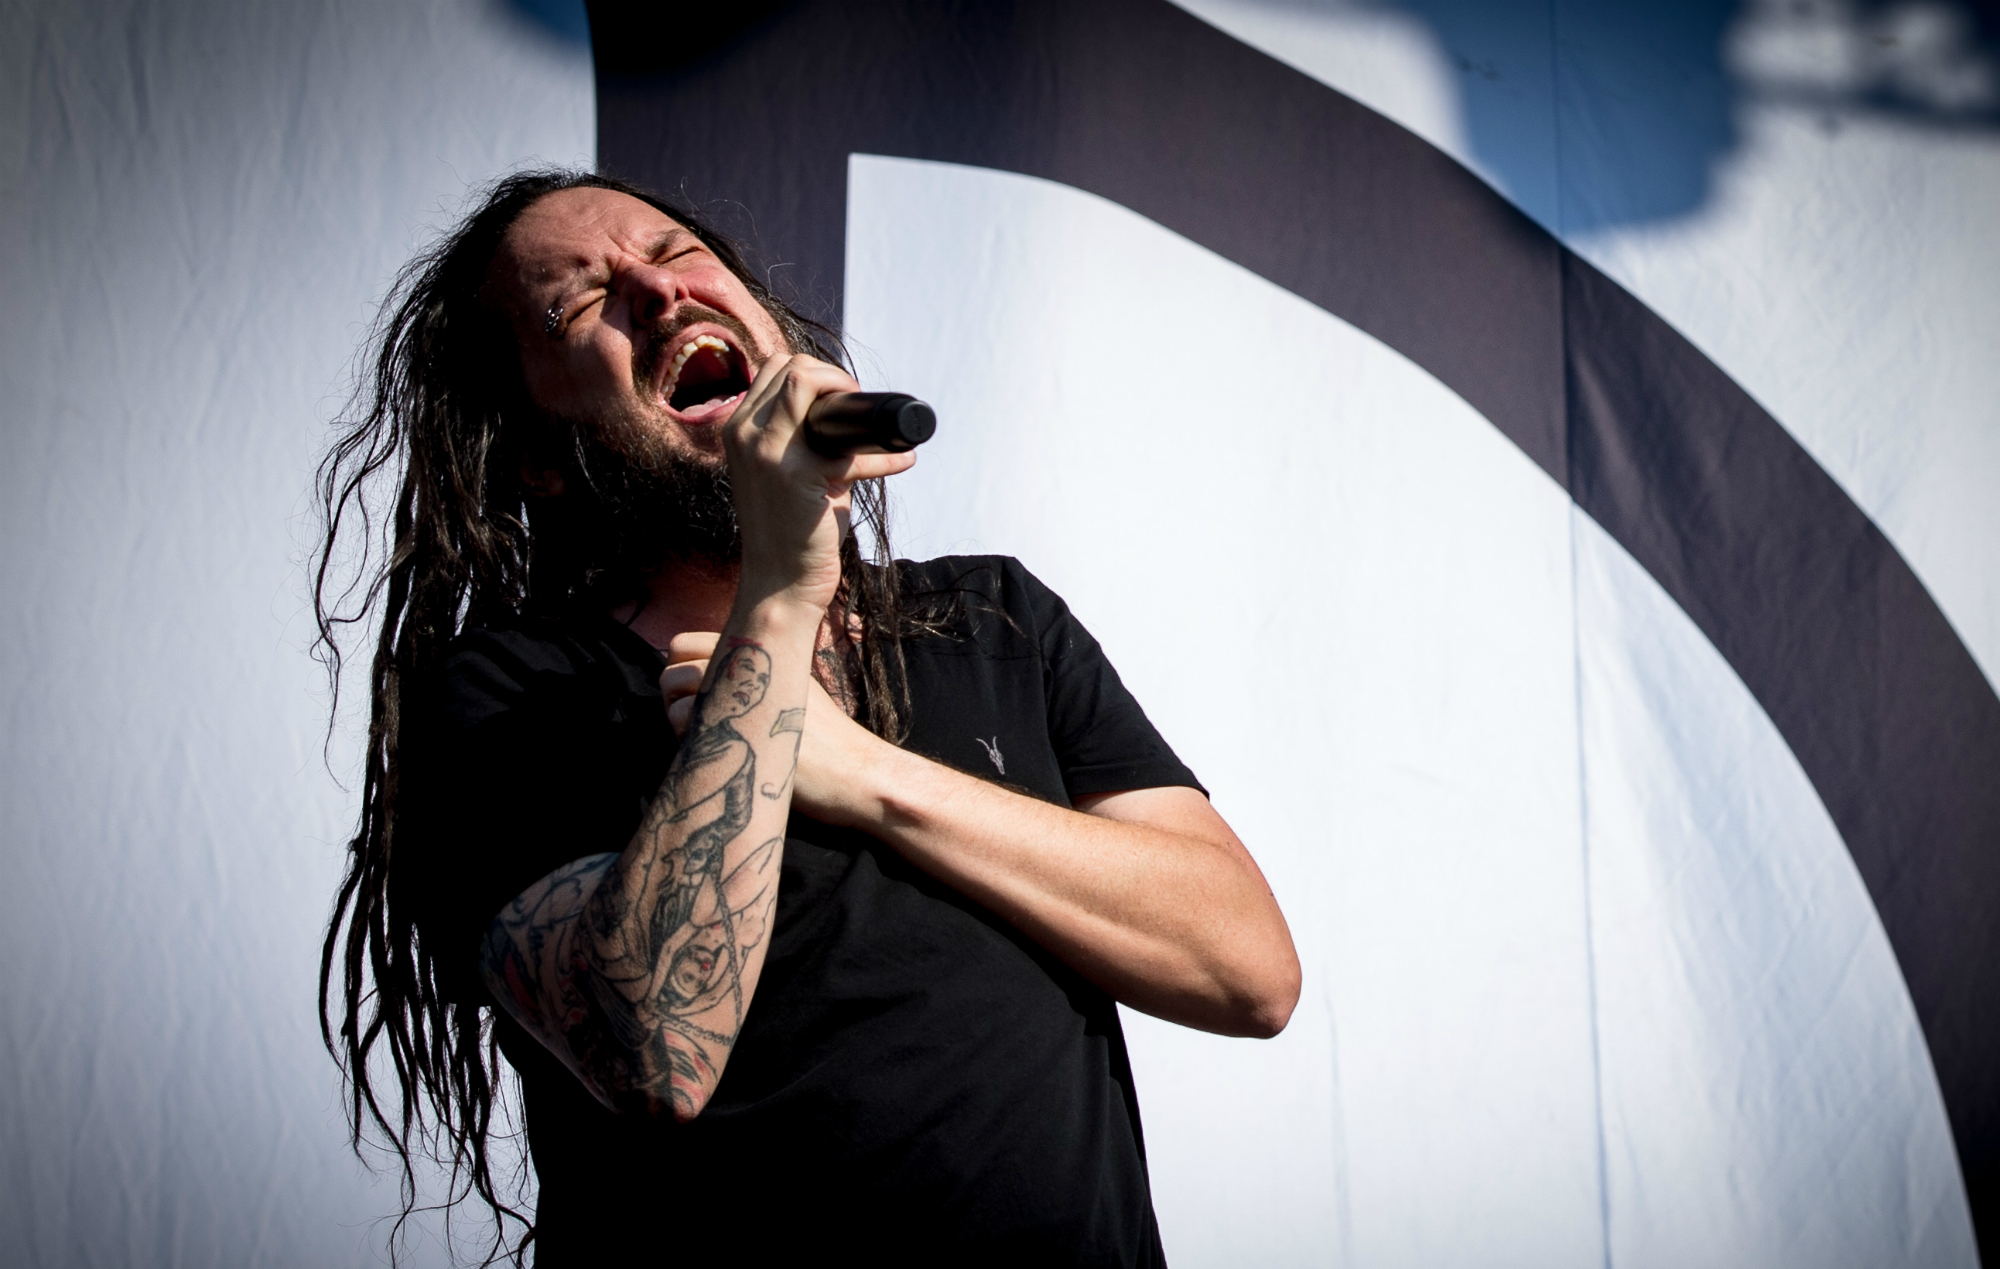 NME Festival blog: KoRn is the latest metal band to launch their own coffee range